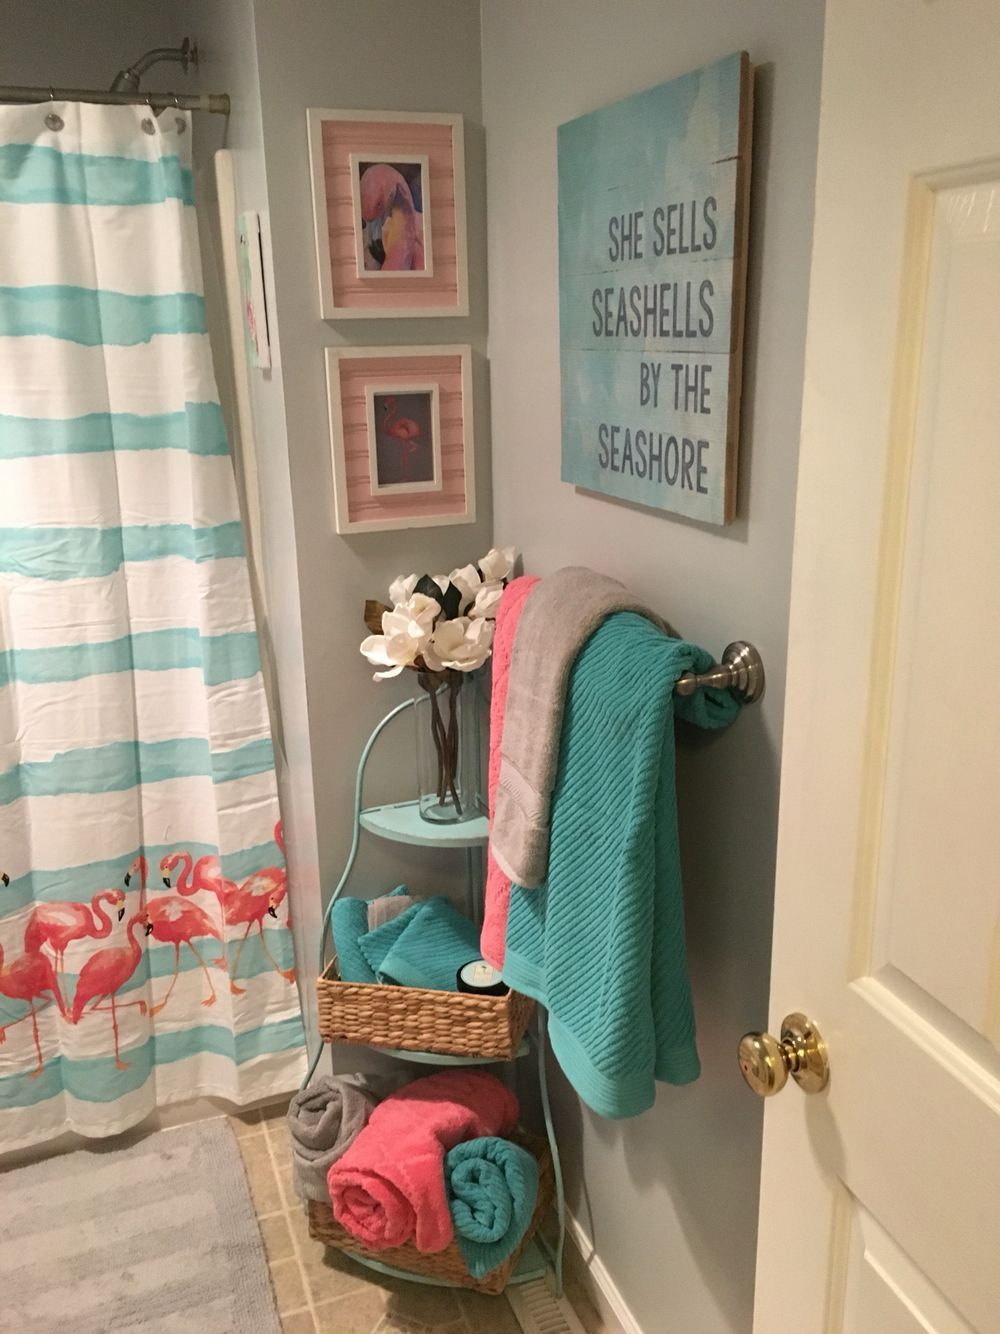 Pin On Home Decor And Organization